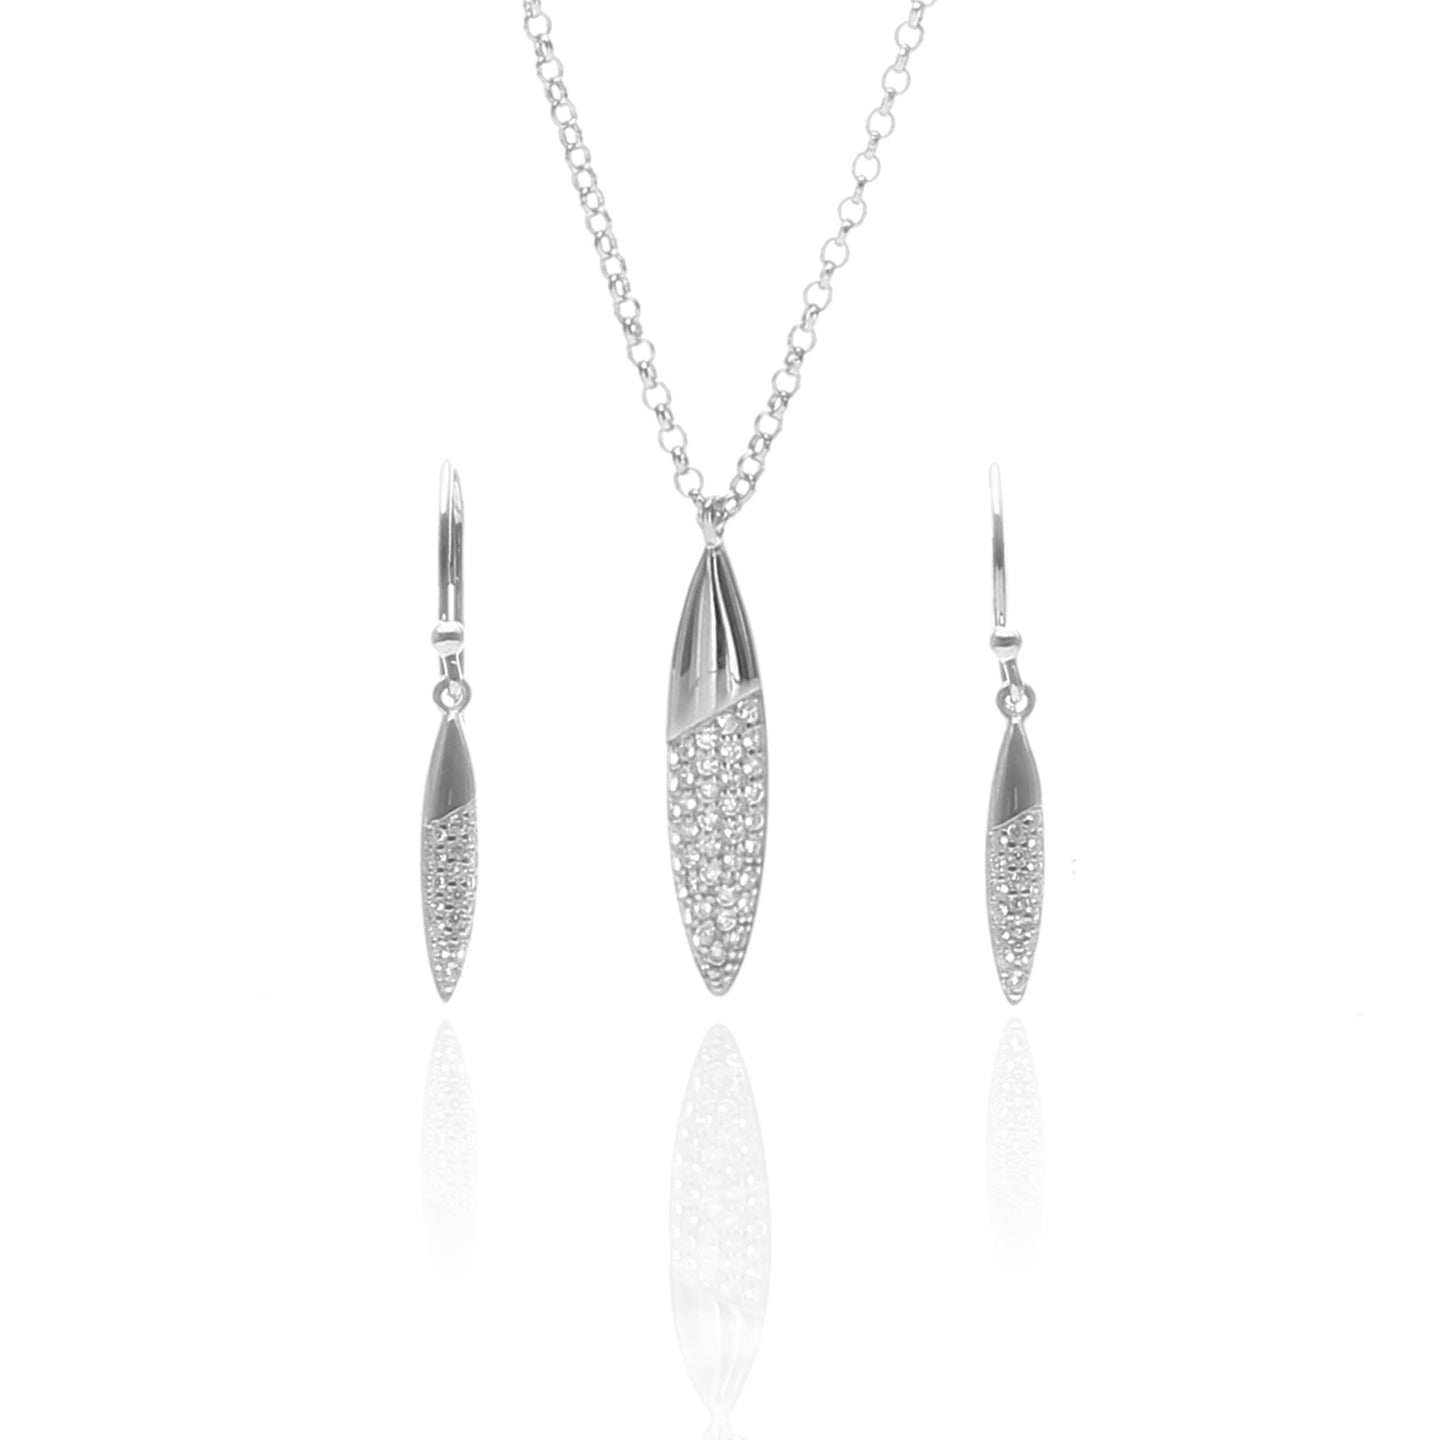 Edgware Pave Drop Pendant Necklace and Earrings Set - ARJW1028RD - ARCADIO LIFESTYLE